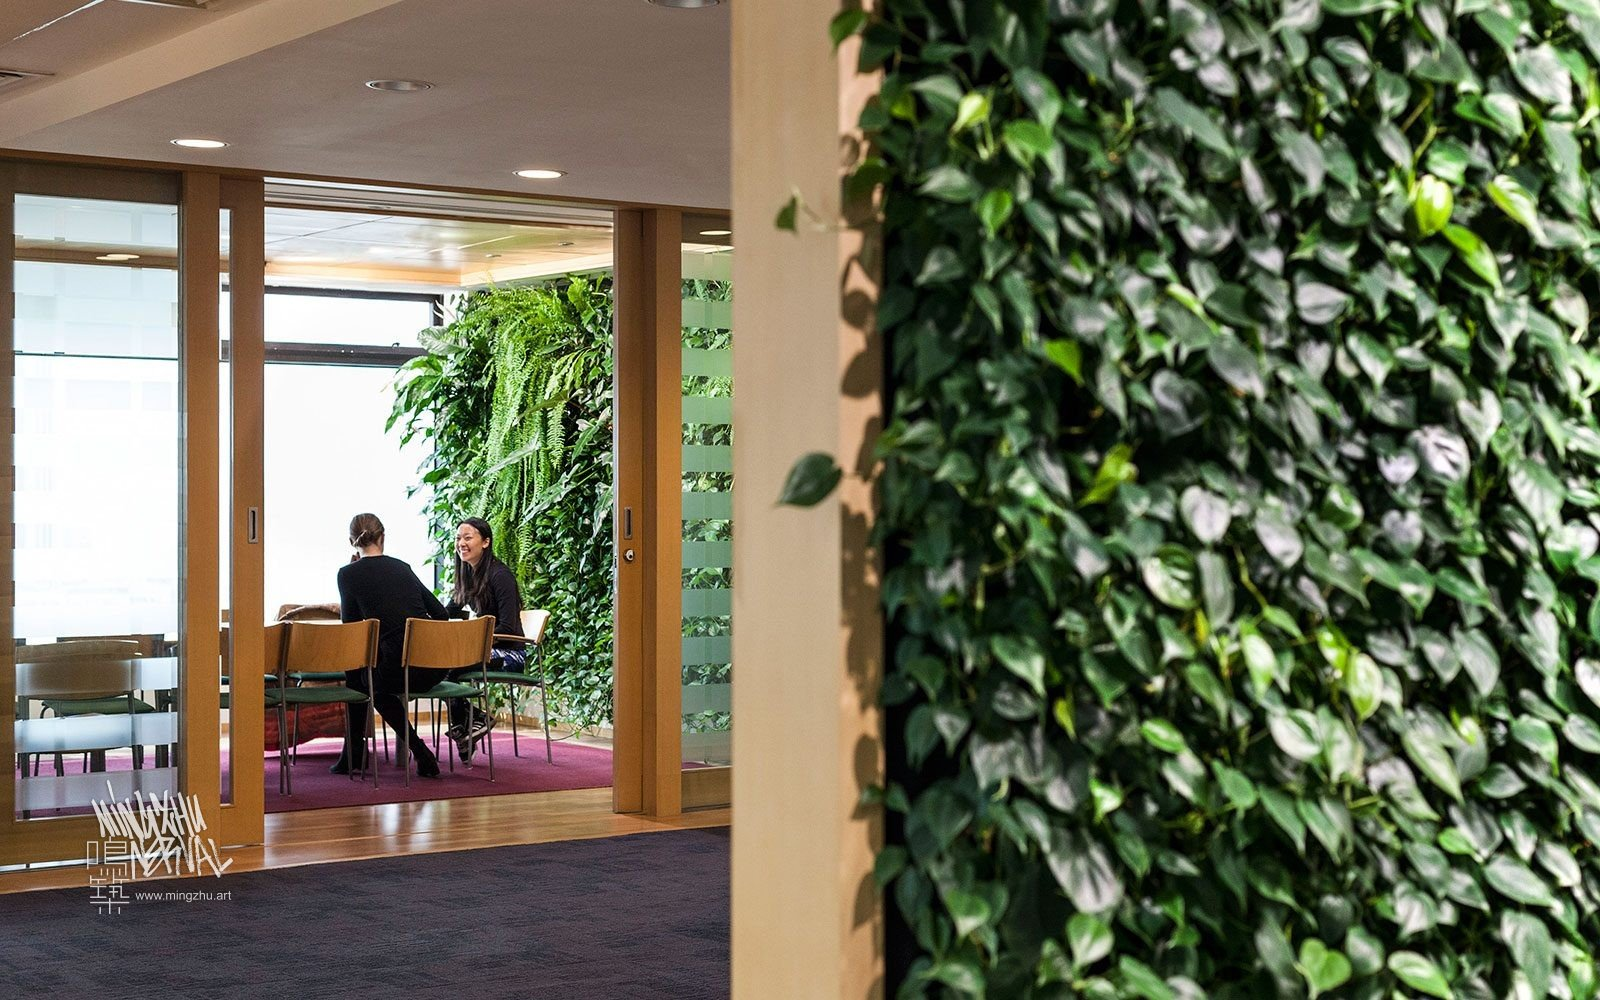 At Mingzhu Nerval, we thrive at creating the most beautiful vertical gardens in the world. For the Swedish Consulate, we created a healthy nature workspace - Shanghai, 2012.